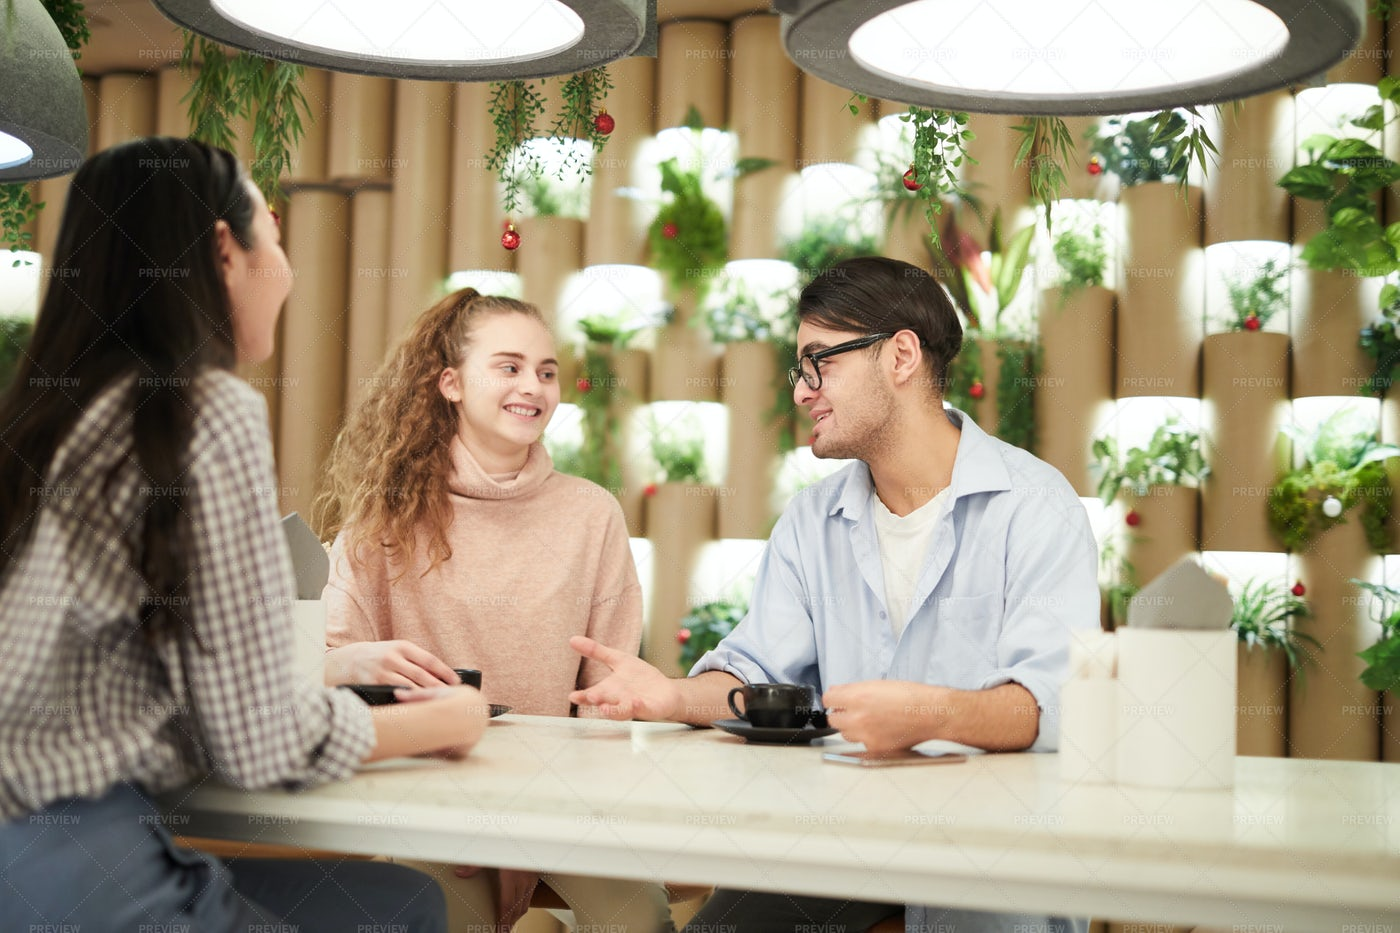 Group Of Students In Cafe: Stock Photos